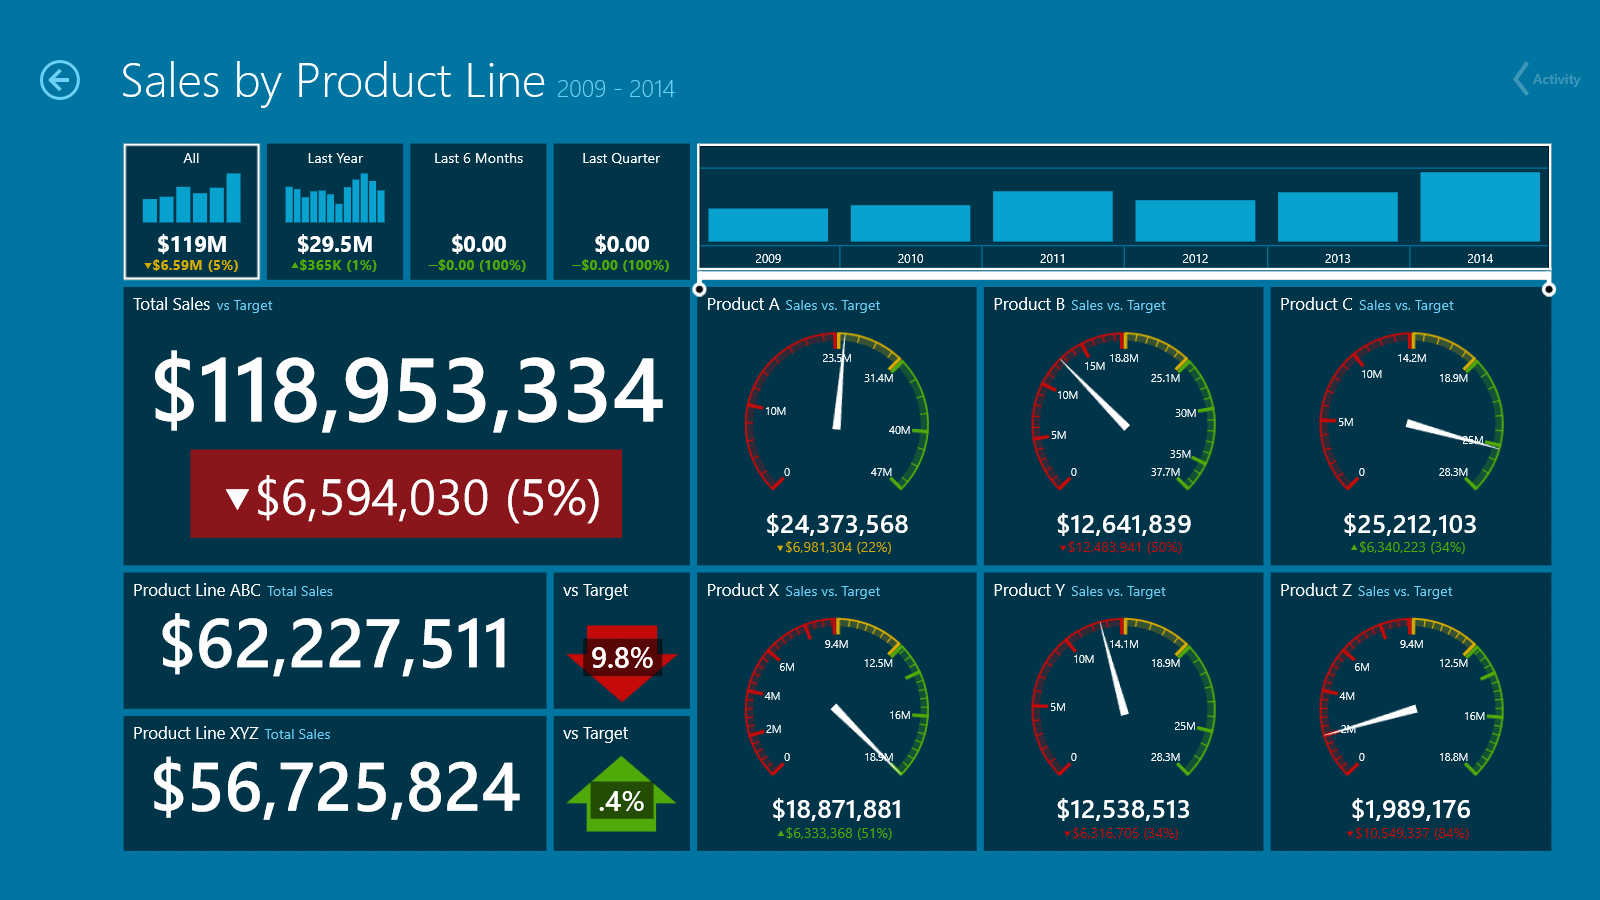 Dashboard: Sales by Product Line